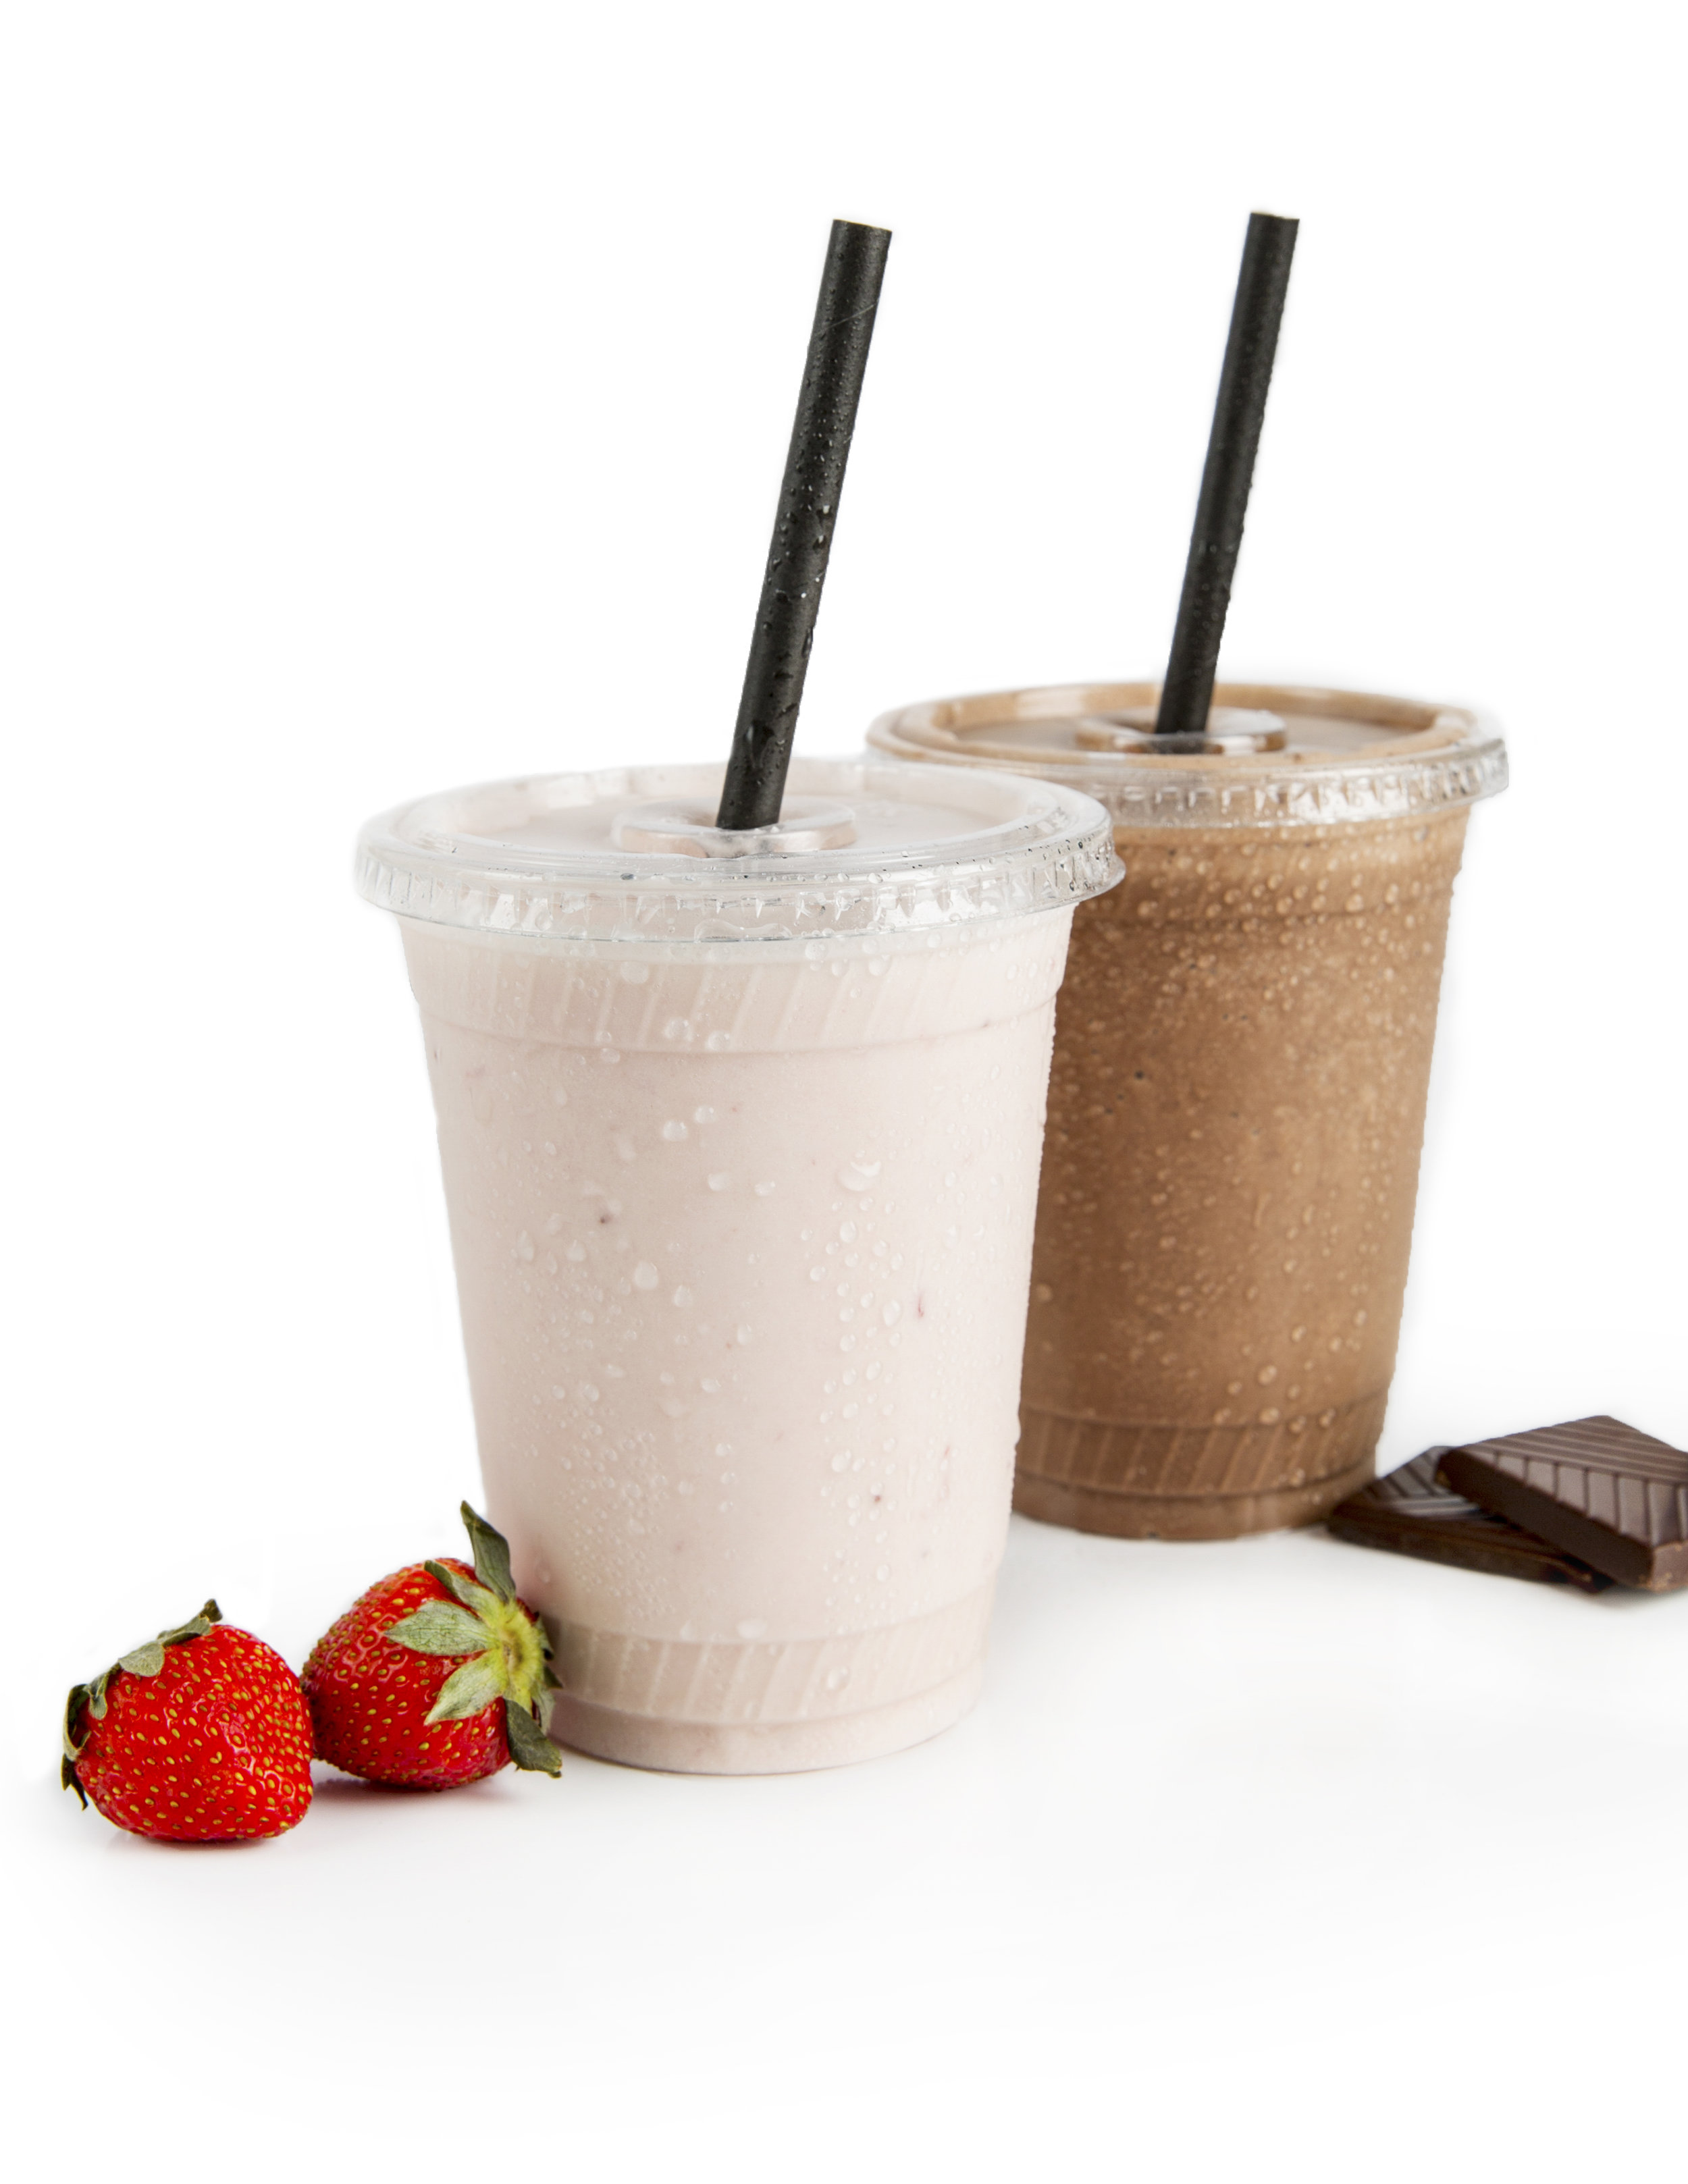 milkShakes - Creamy, rich and delicious plant-based shakes, available in chocolate or strawberry.